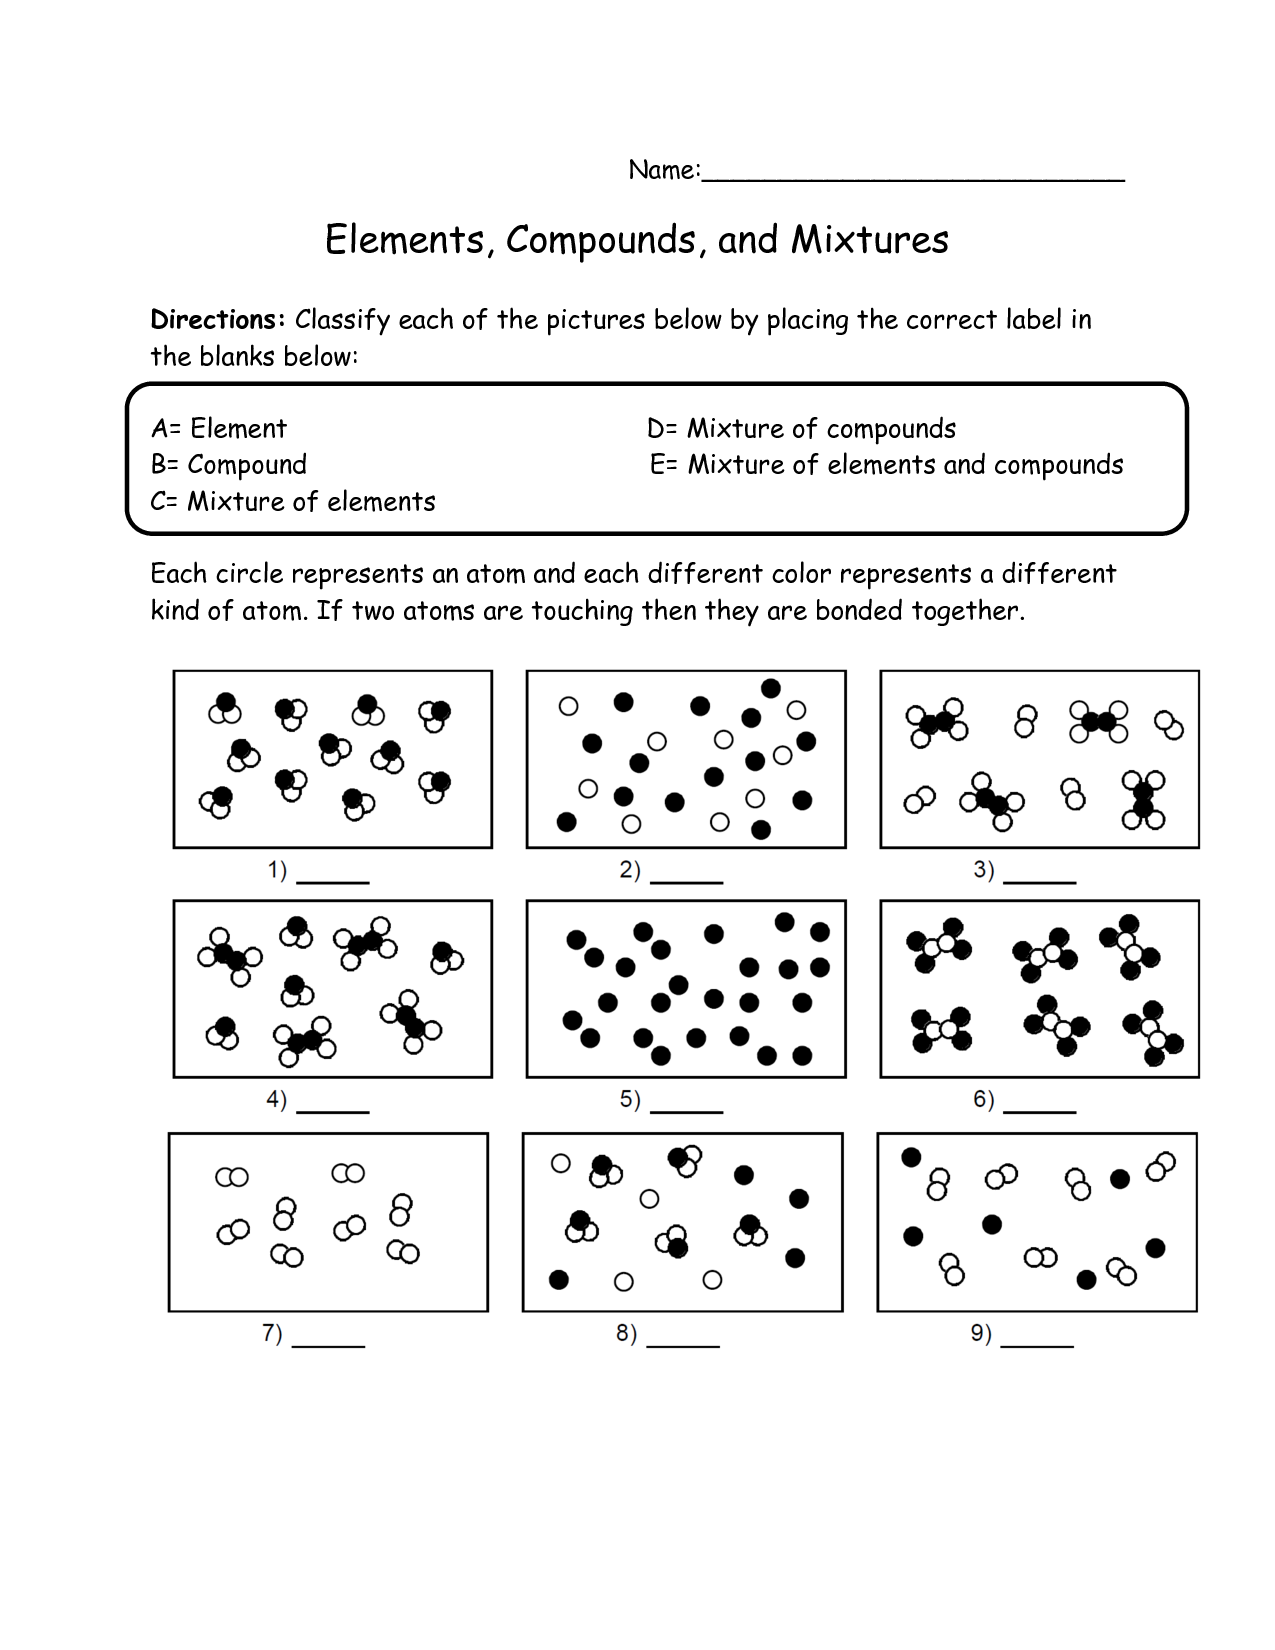 Printables Elements Compounds Mixtures Worksheet elements compounds and mixtures worksheets davezan elements